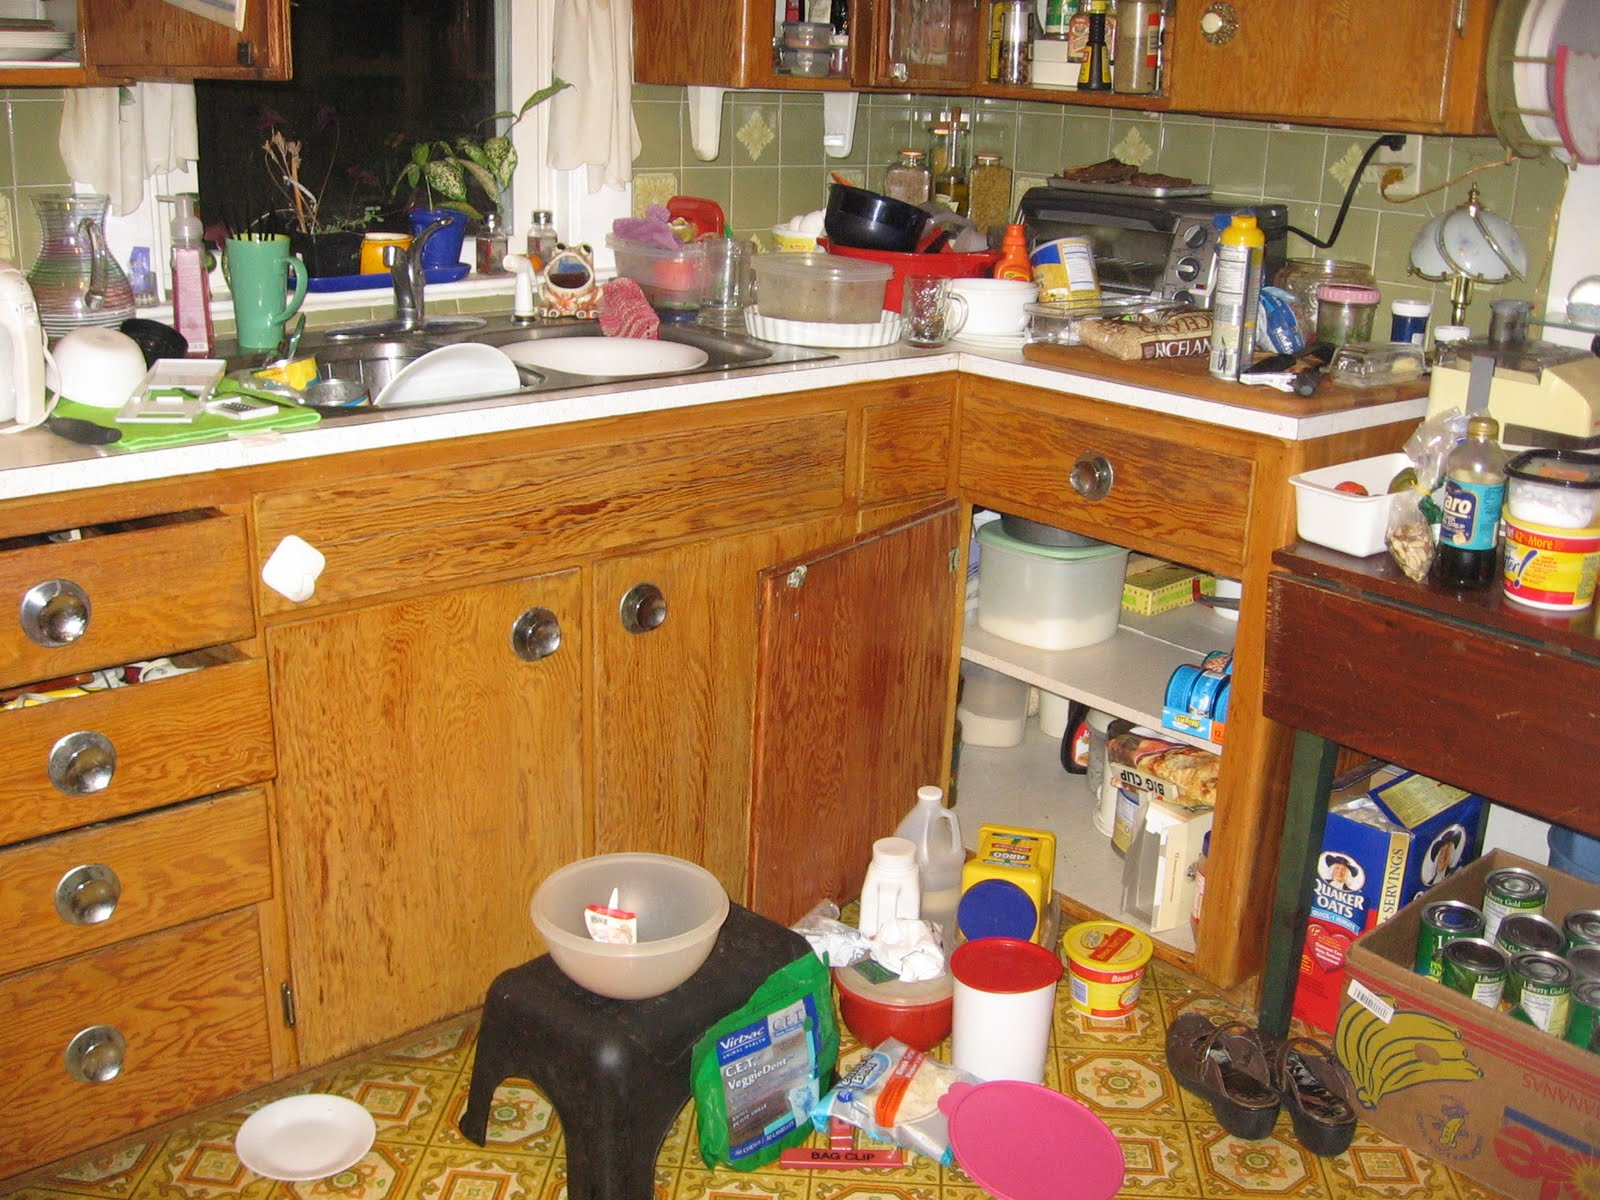 Messy Construction Kitchens : Cards ubylouise and other treasures december